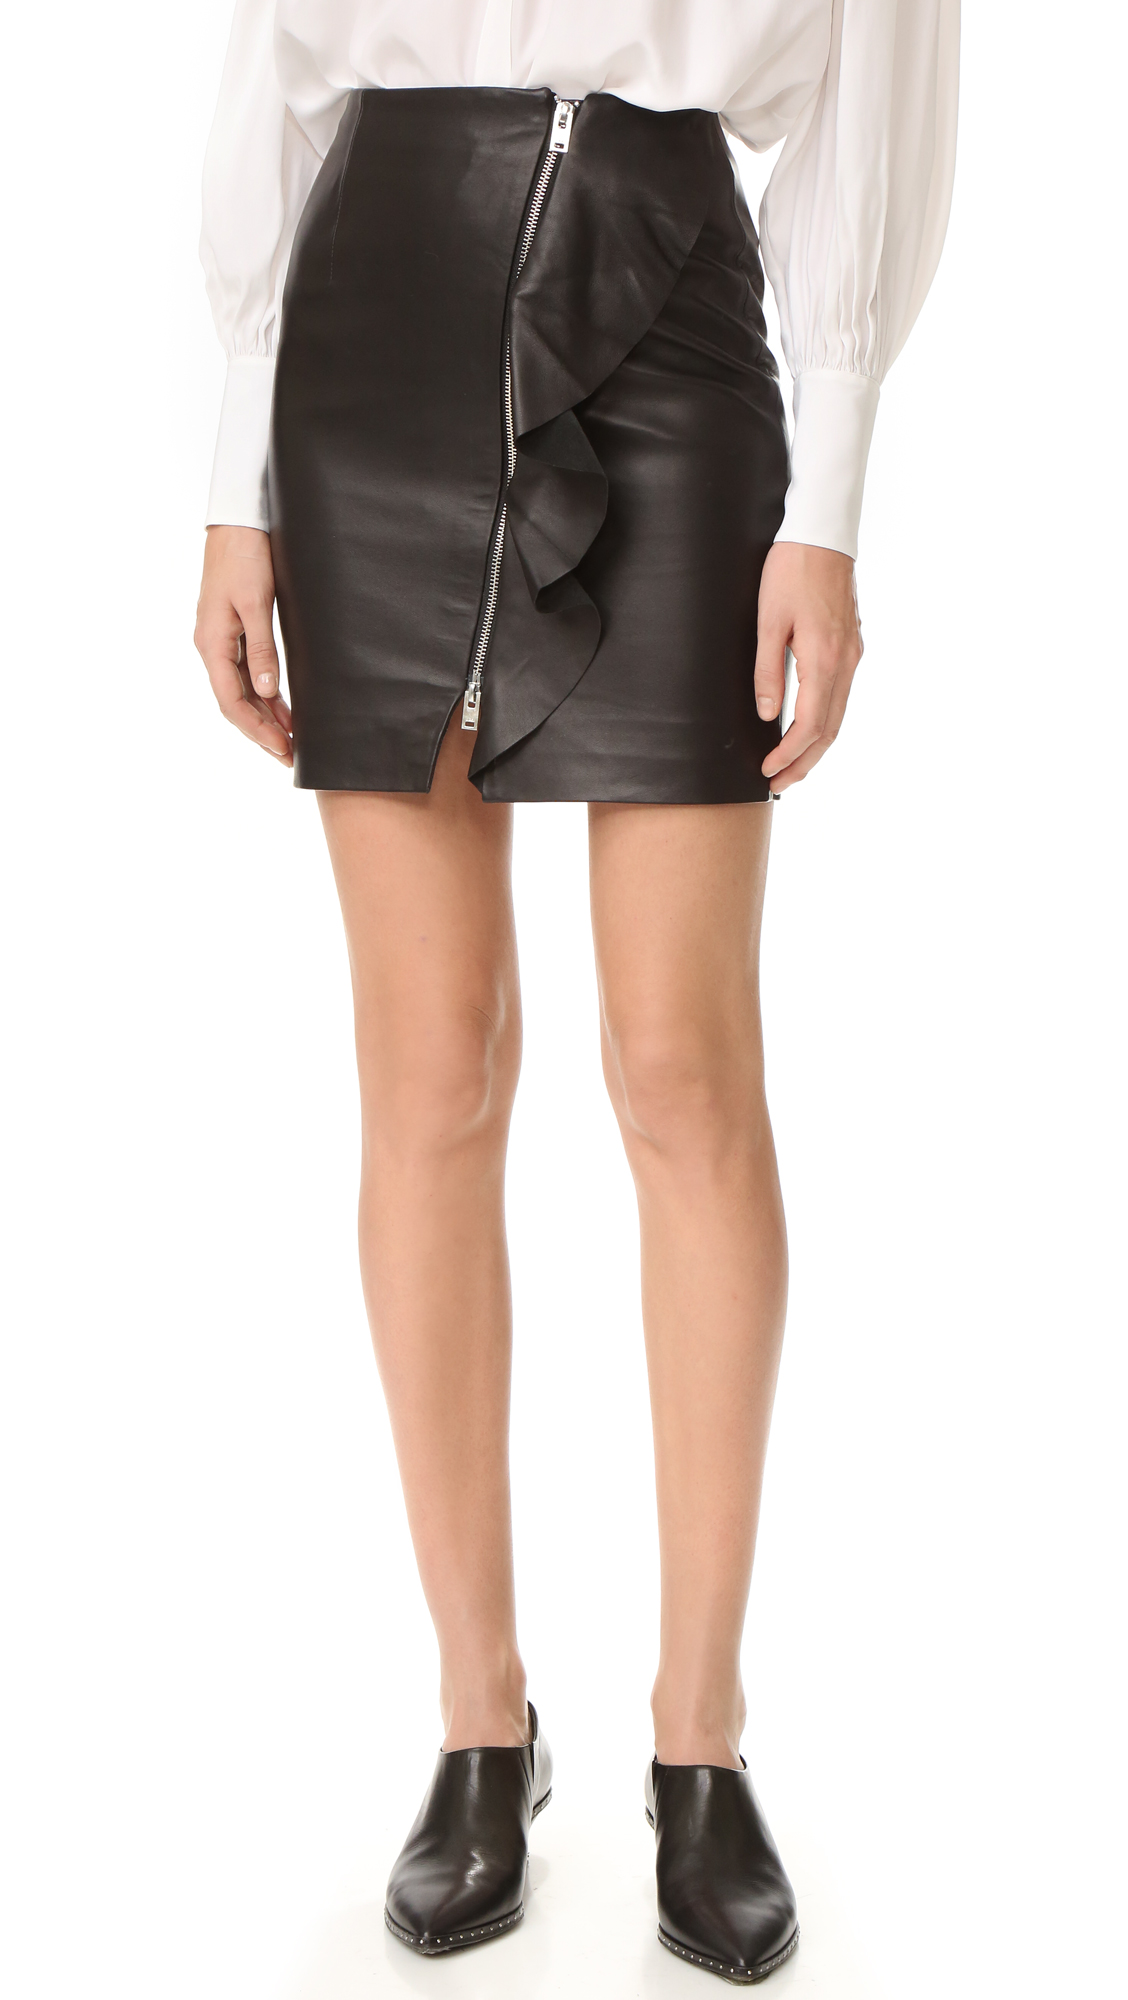 A flounced ruffle runs along the exposed two way zip on this luxe leather IRO skirt. Lined. Fabric: Leather. Shell: 100% lambskin. Lining: 53% polyester/47% viscose. Leather clean. Imported, China. Measurements Length: 17.75in / 45cm Measurements from size 36. Available